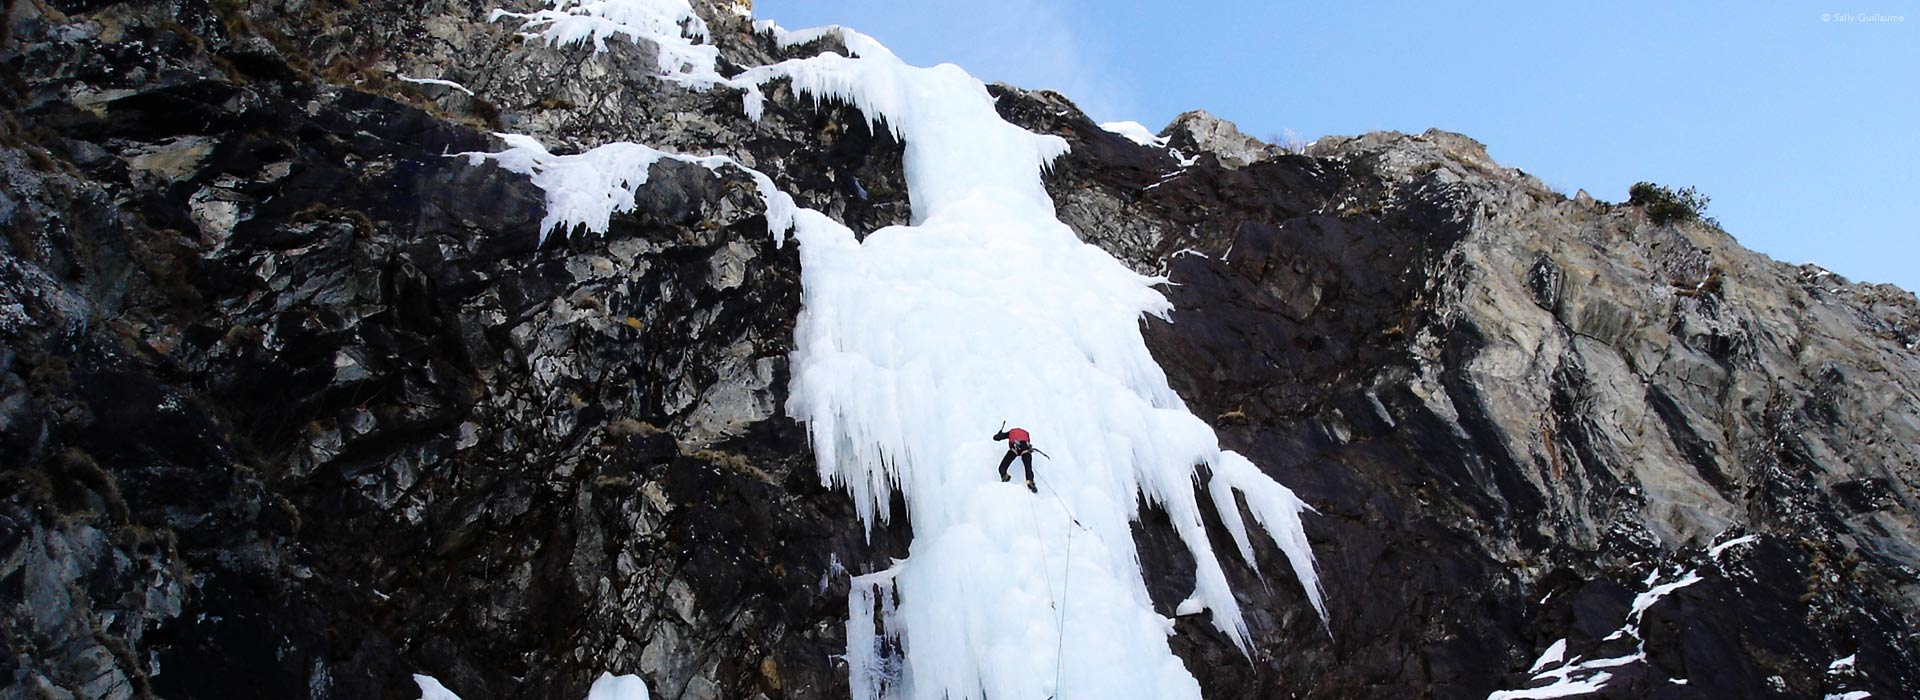 ice-climbing on frozen waterfall